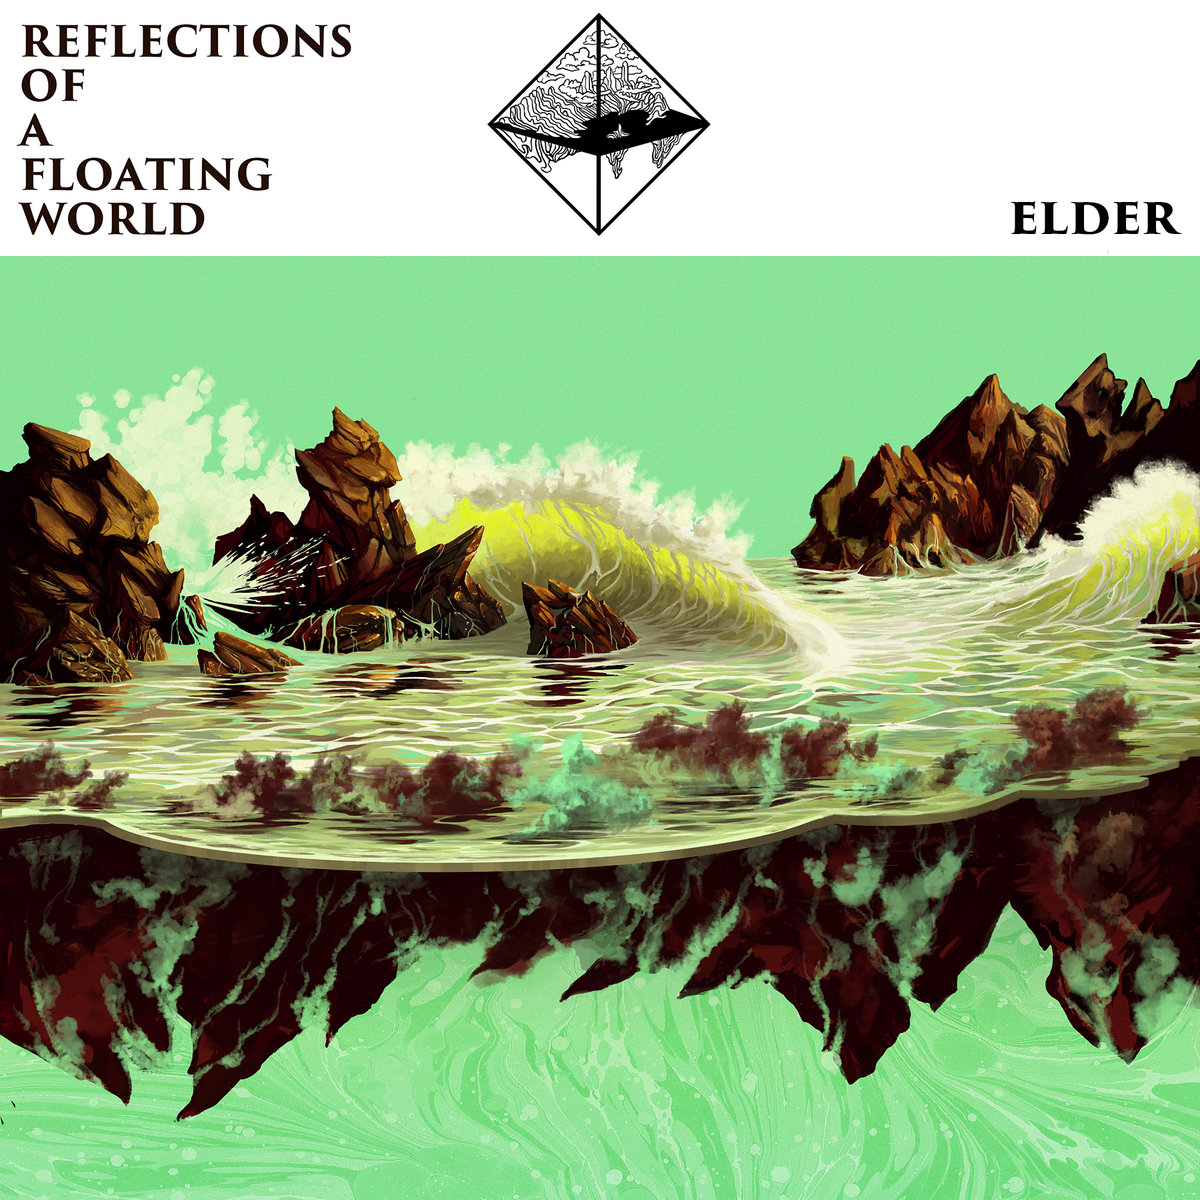 Elder • Reflections of a Floating World